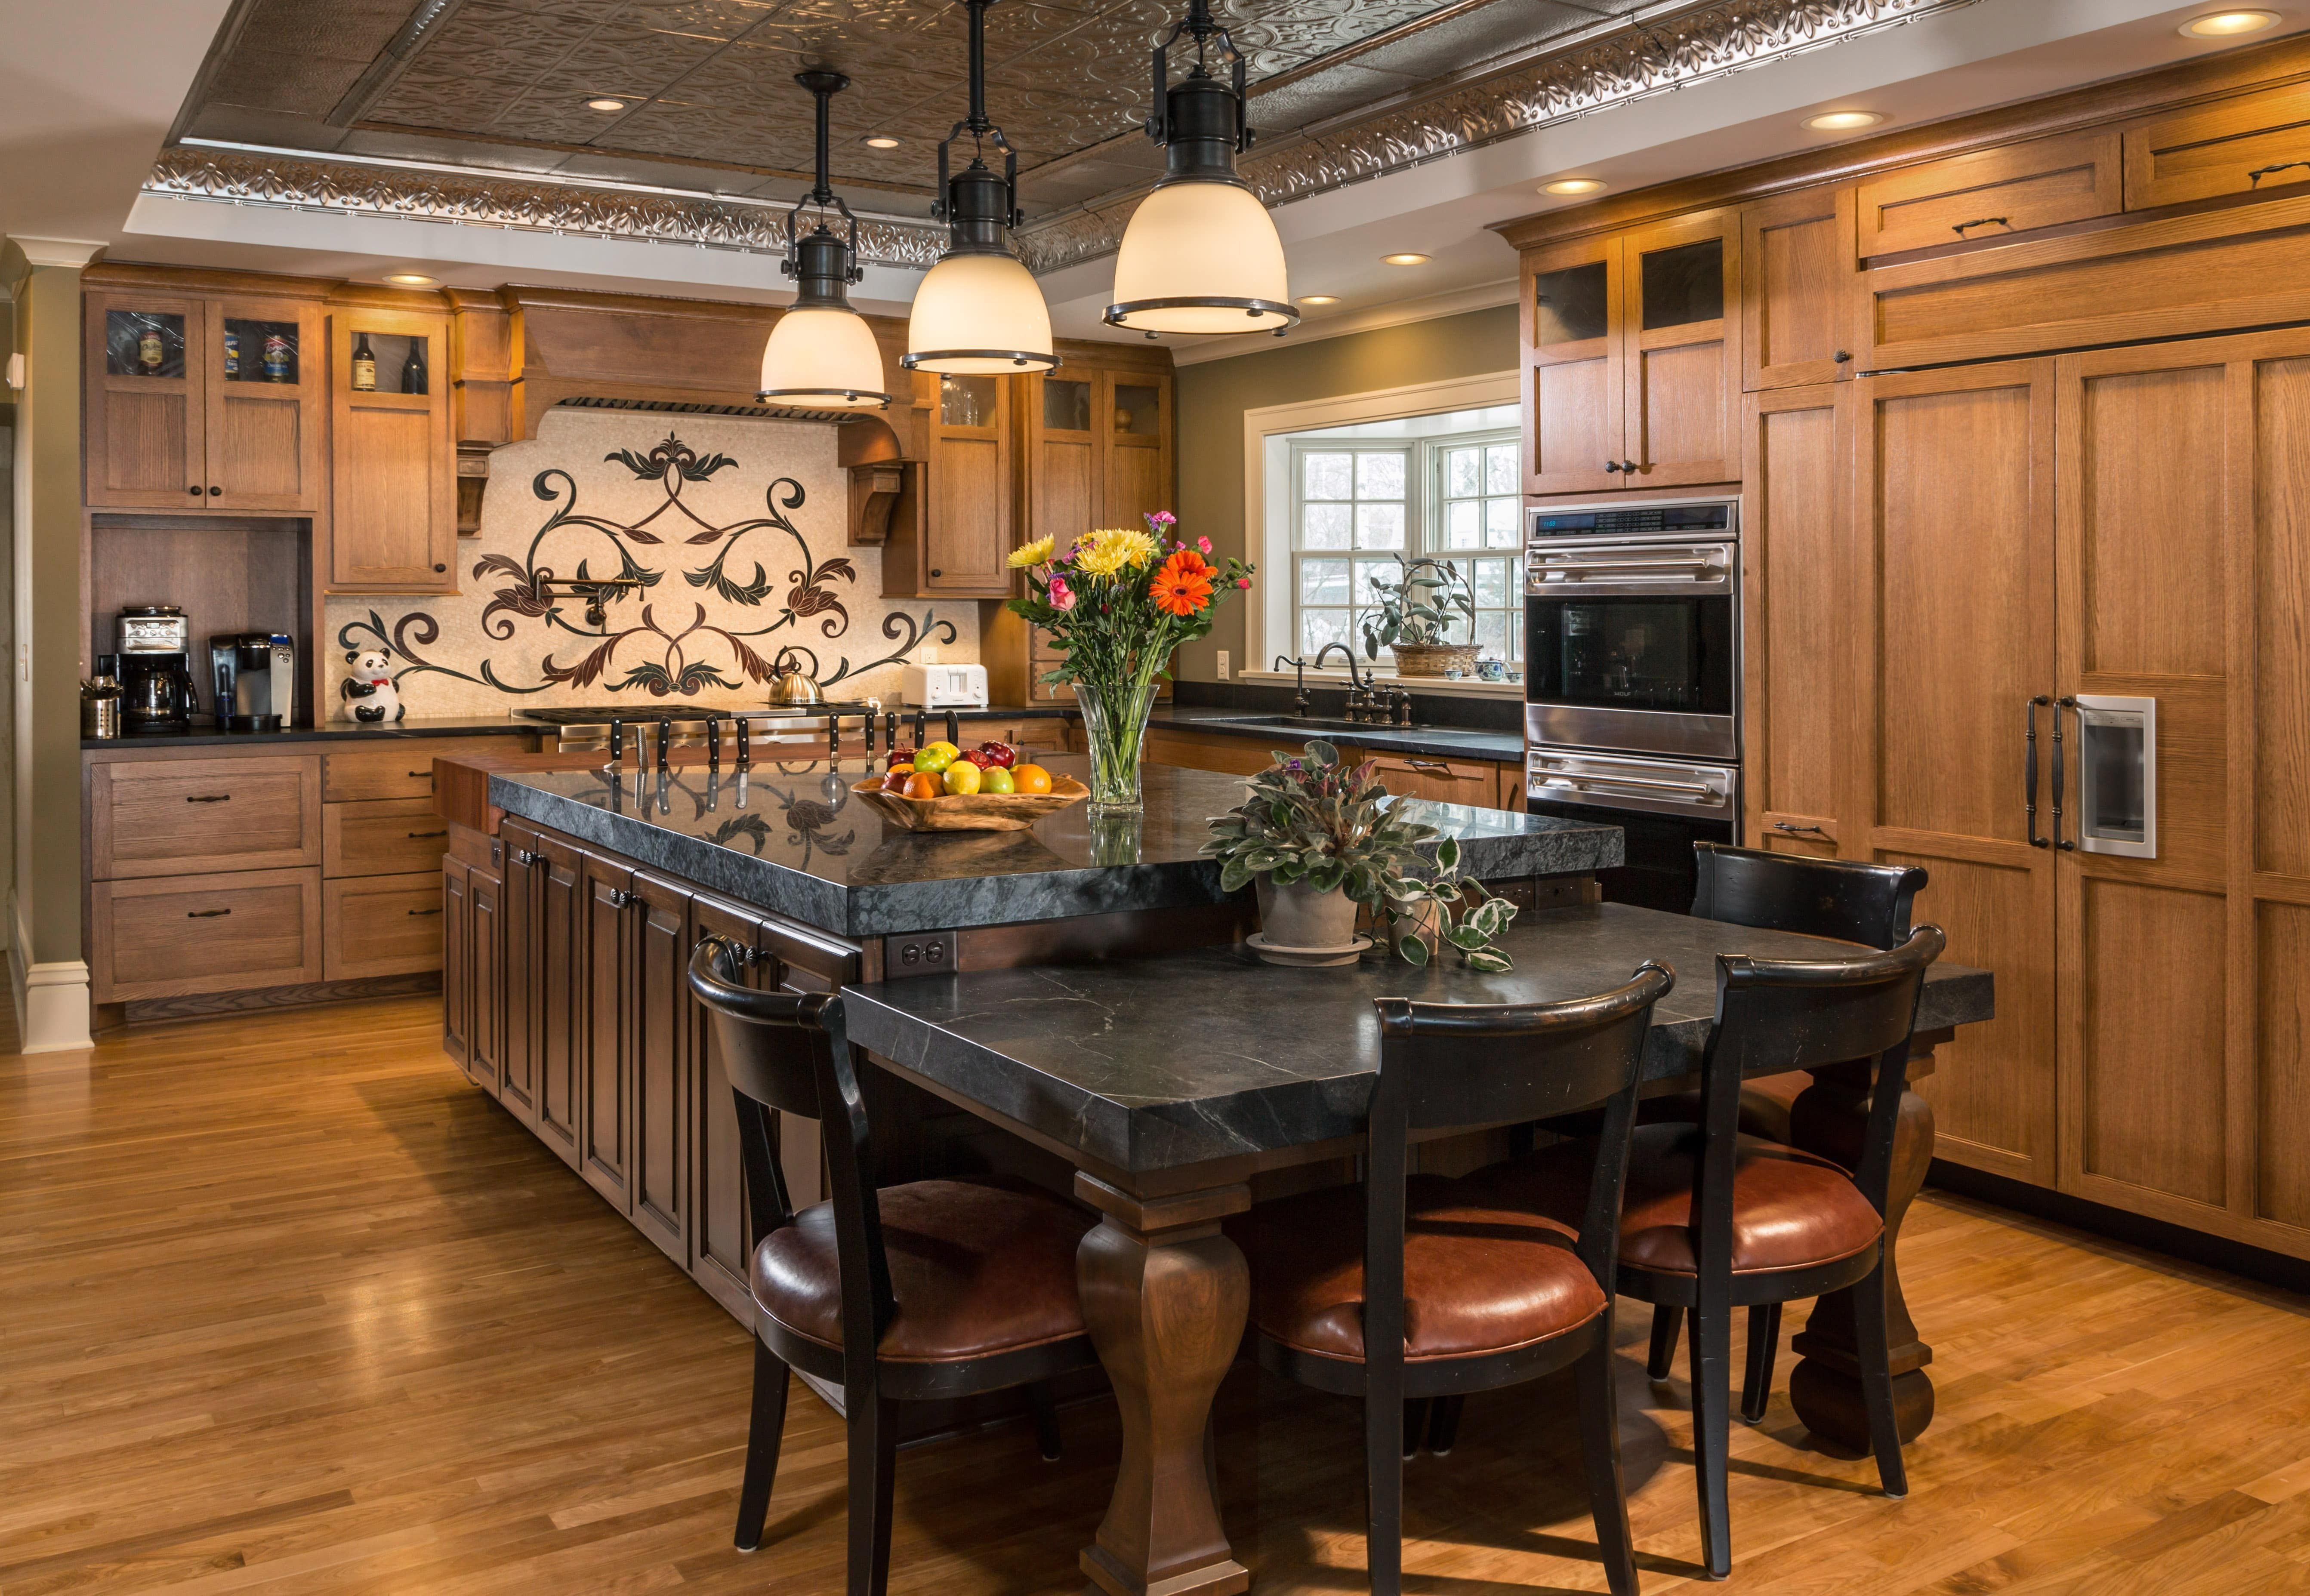 Inspiration gallery american tin ceilings kitchen ideas